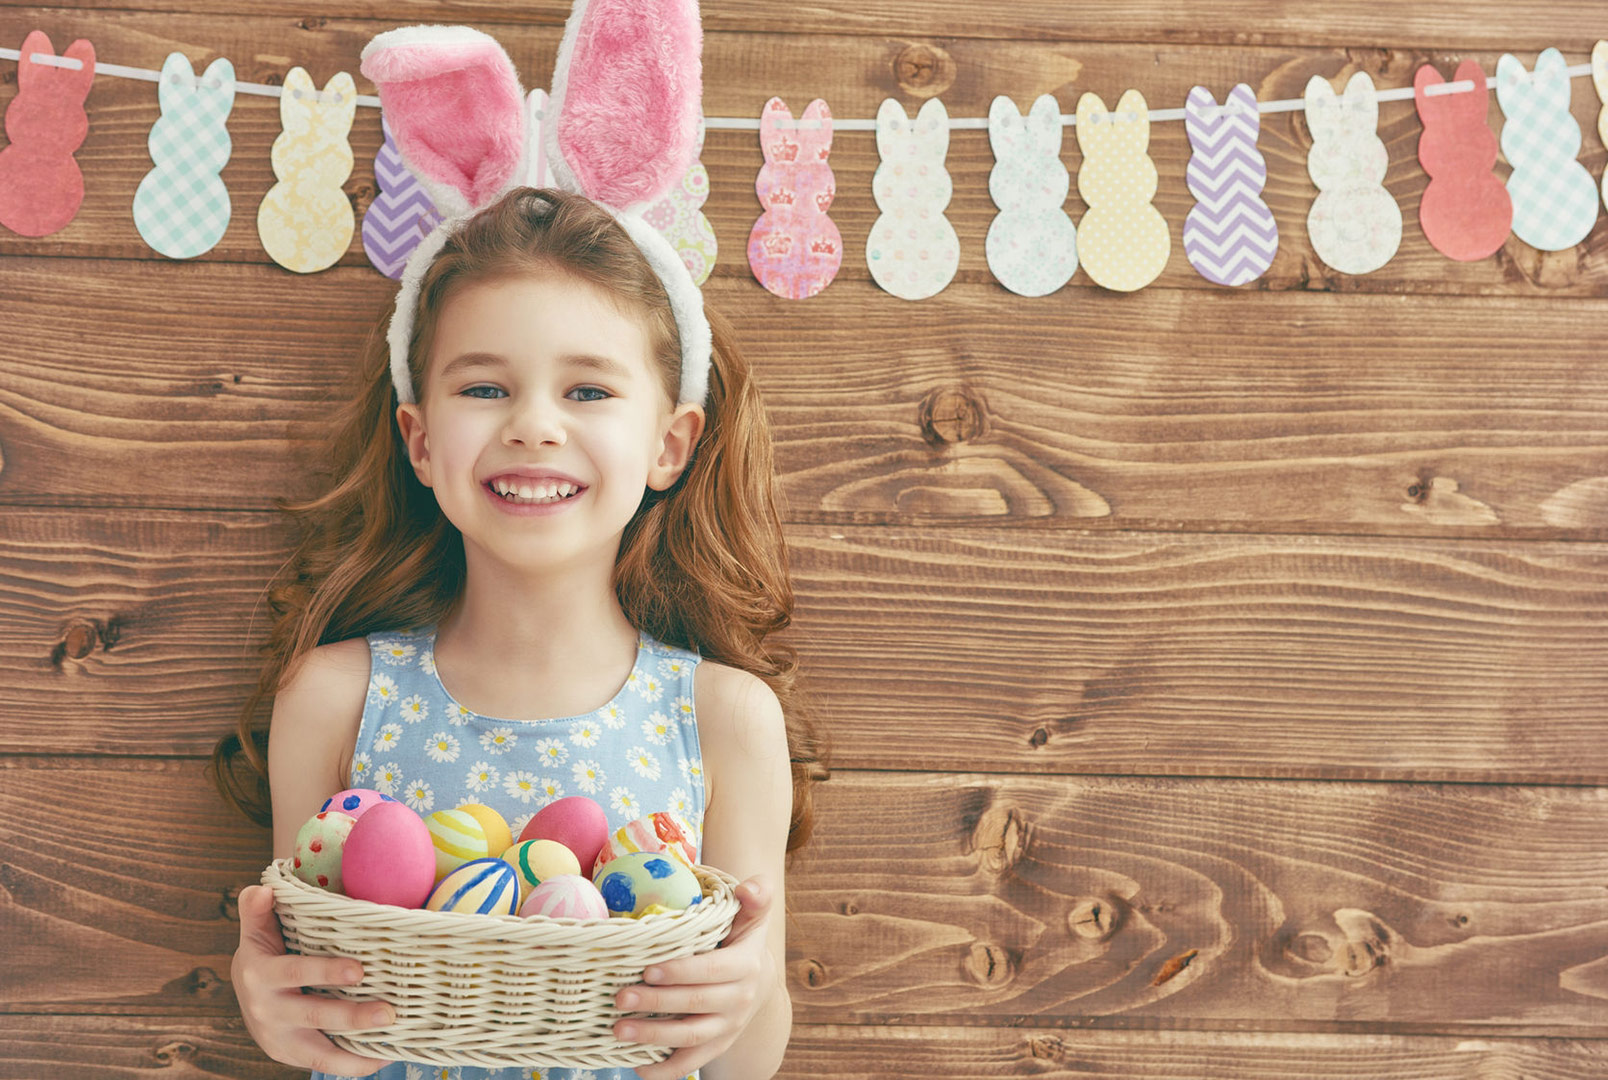 Hartleys-blog-on-easter-egg-hunt-ideas-picture-of-girl-holding-a-basket-of-eggs